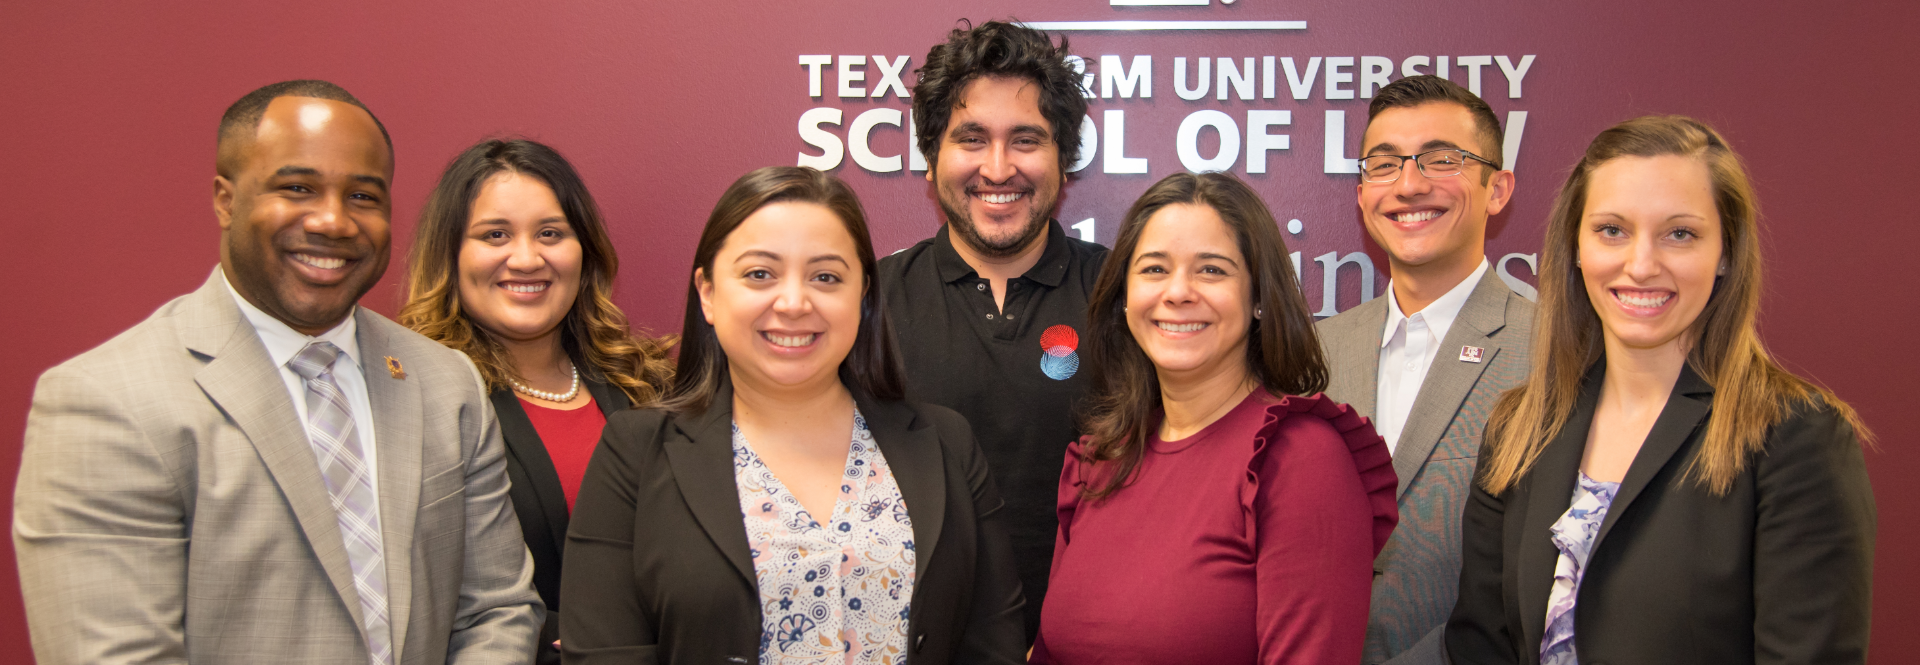 Students and faculty at the Texas A&M School of Law tackle real-world cases in the pursuit of justice.